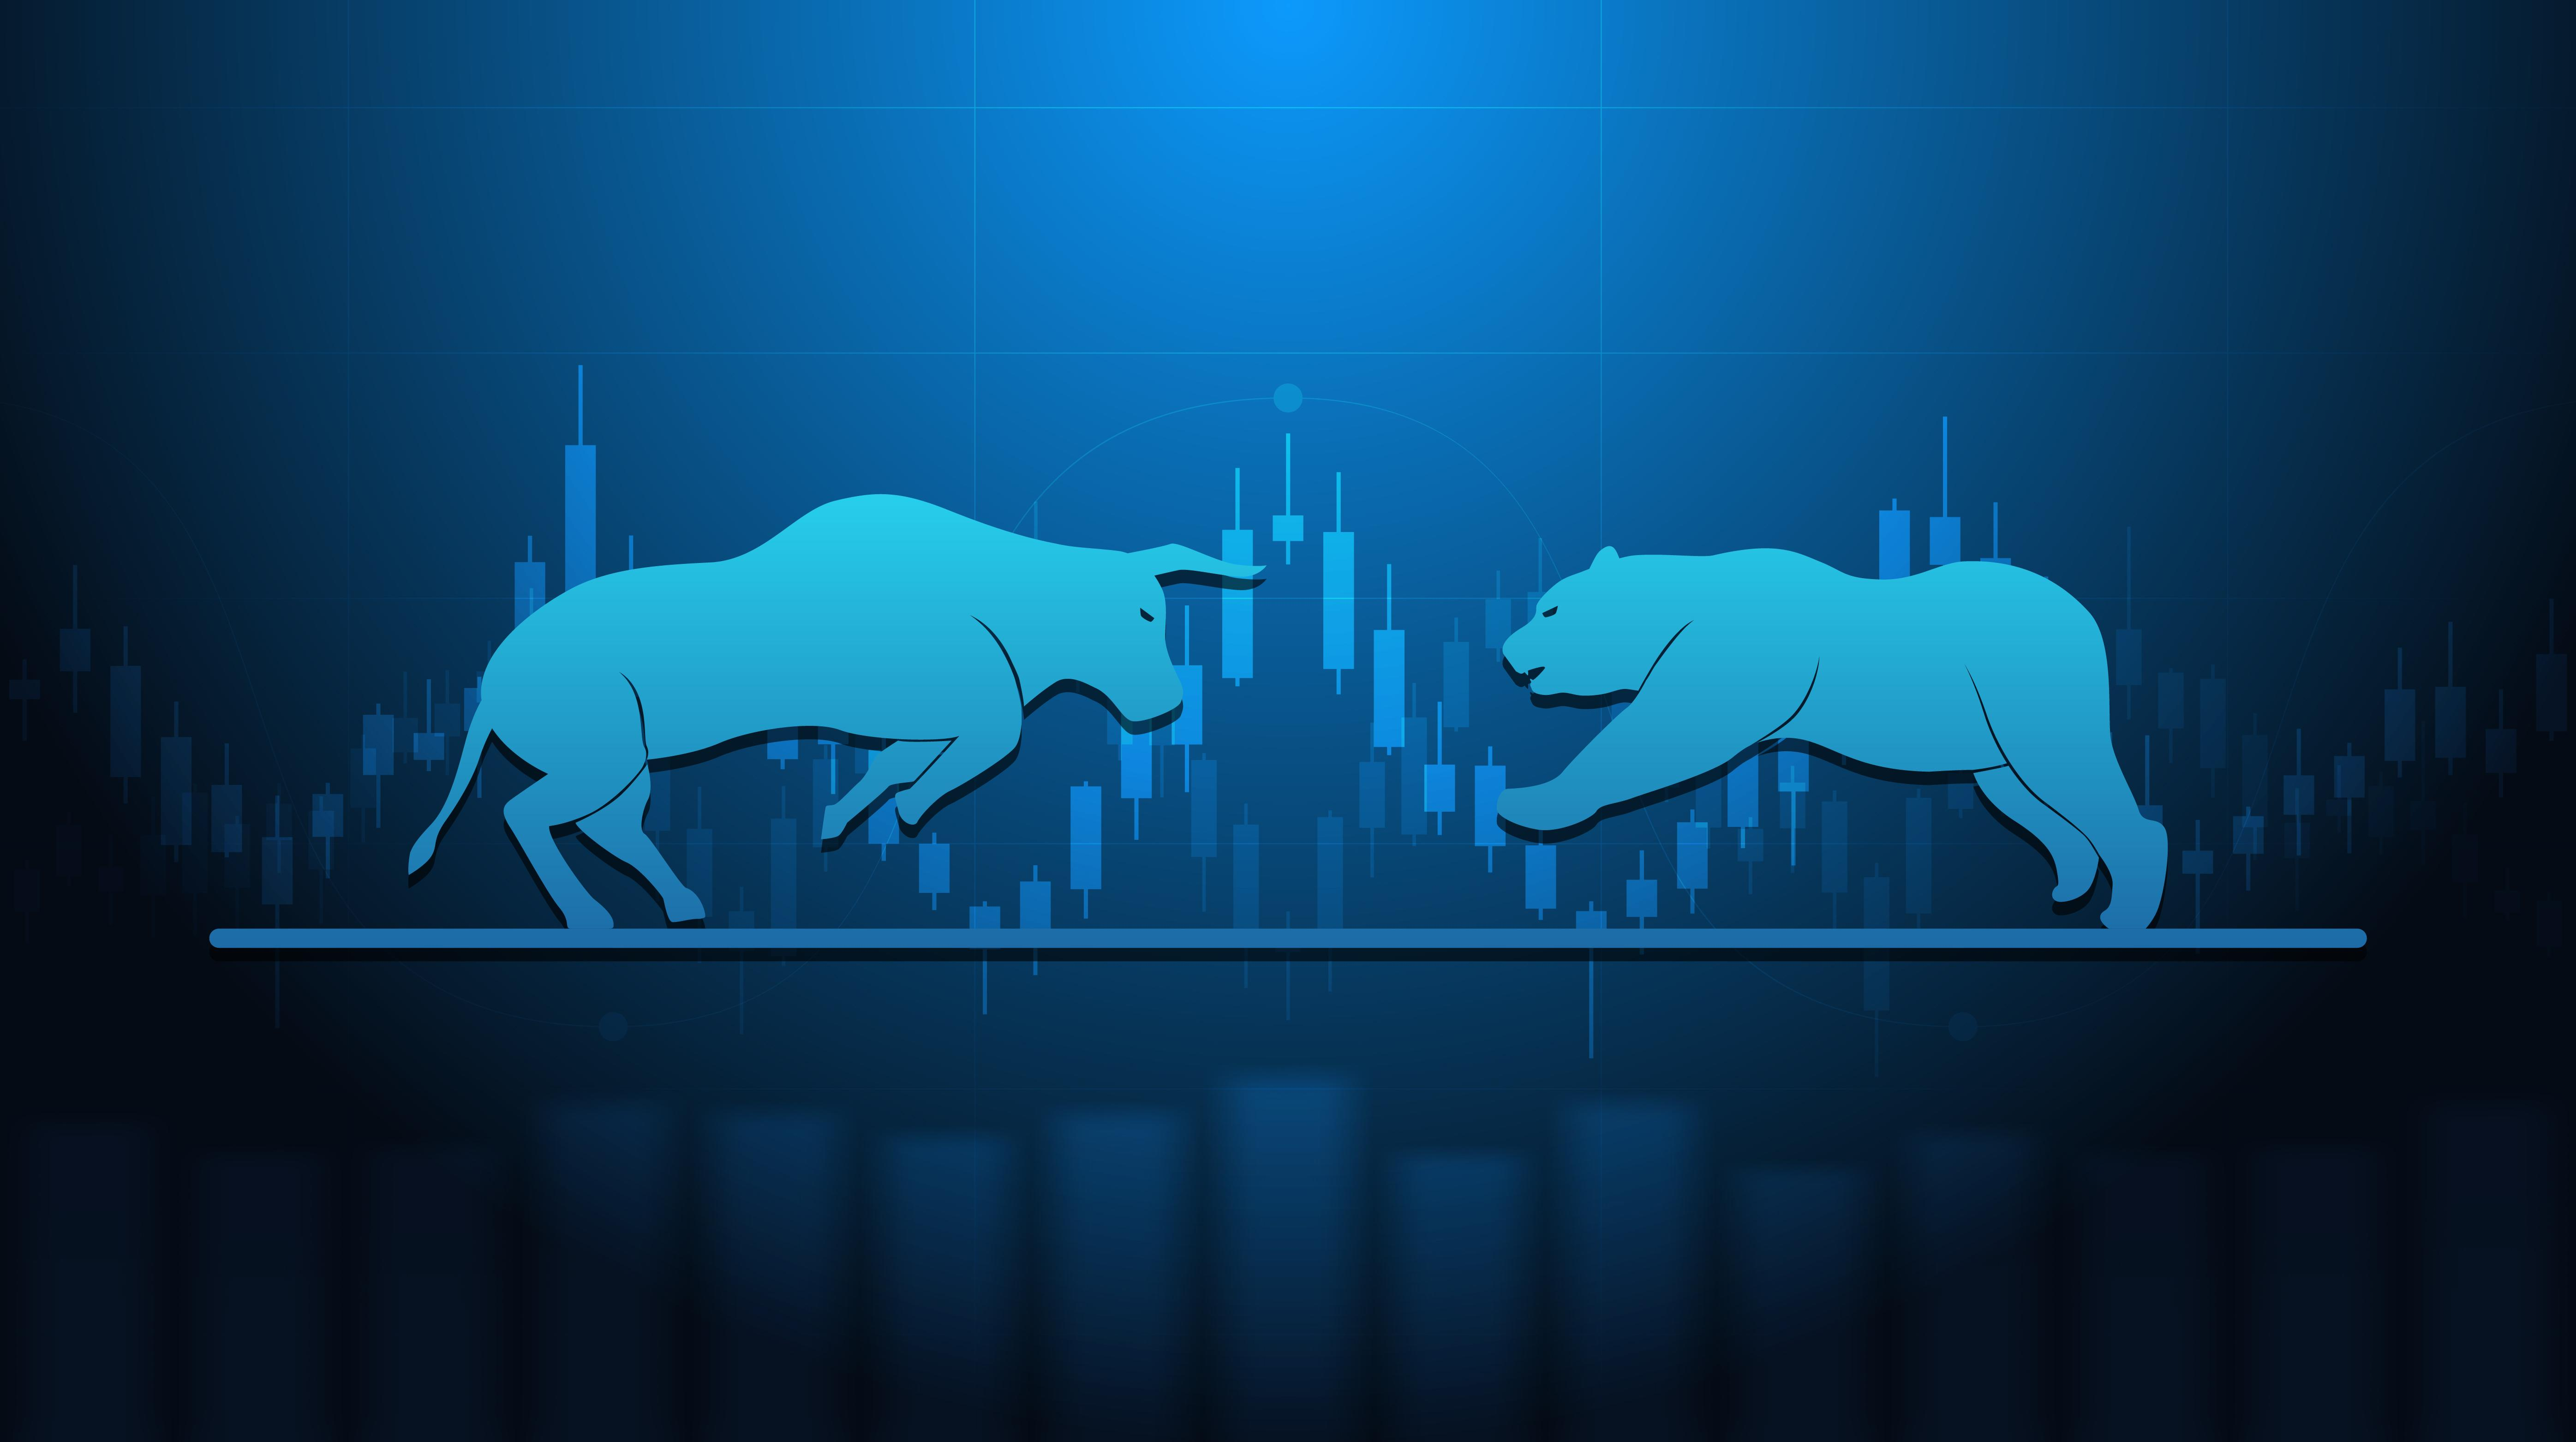 Technically Speaking: Is the Drop in Individual Investor Sentiment Bullish or Bearish?